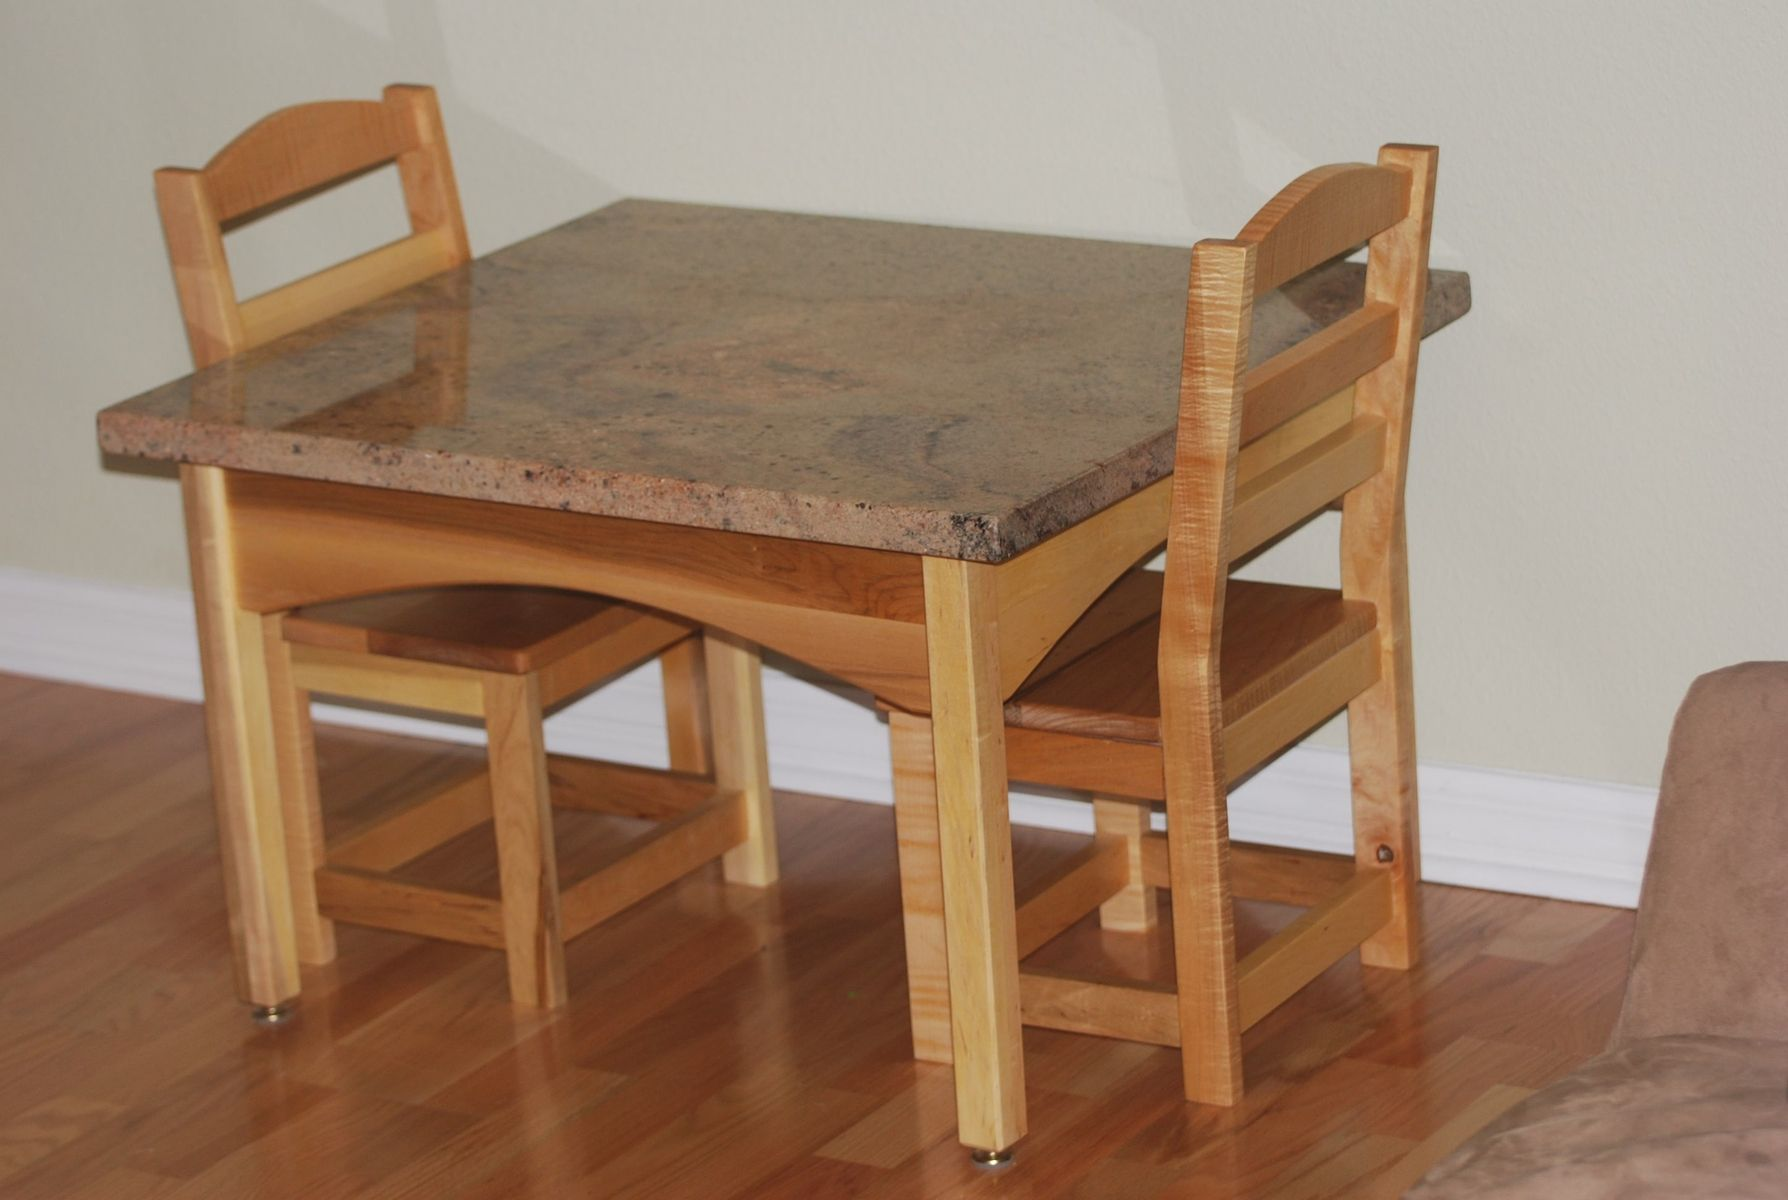 Hand Crafted Childrens Table And Chair Set by Memphis Woodwork s